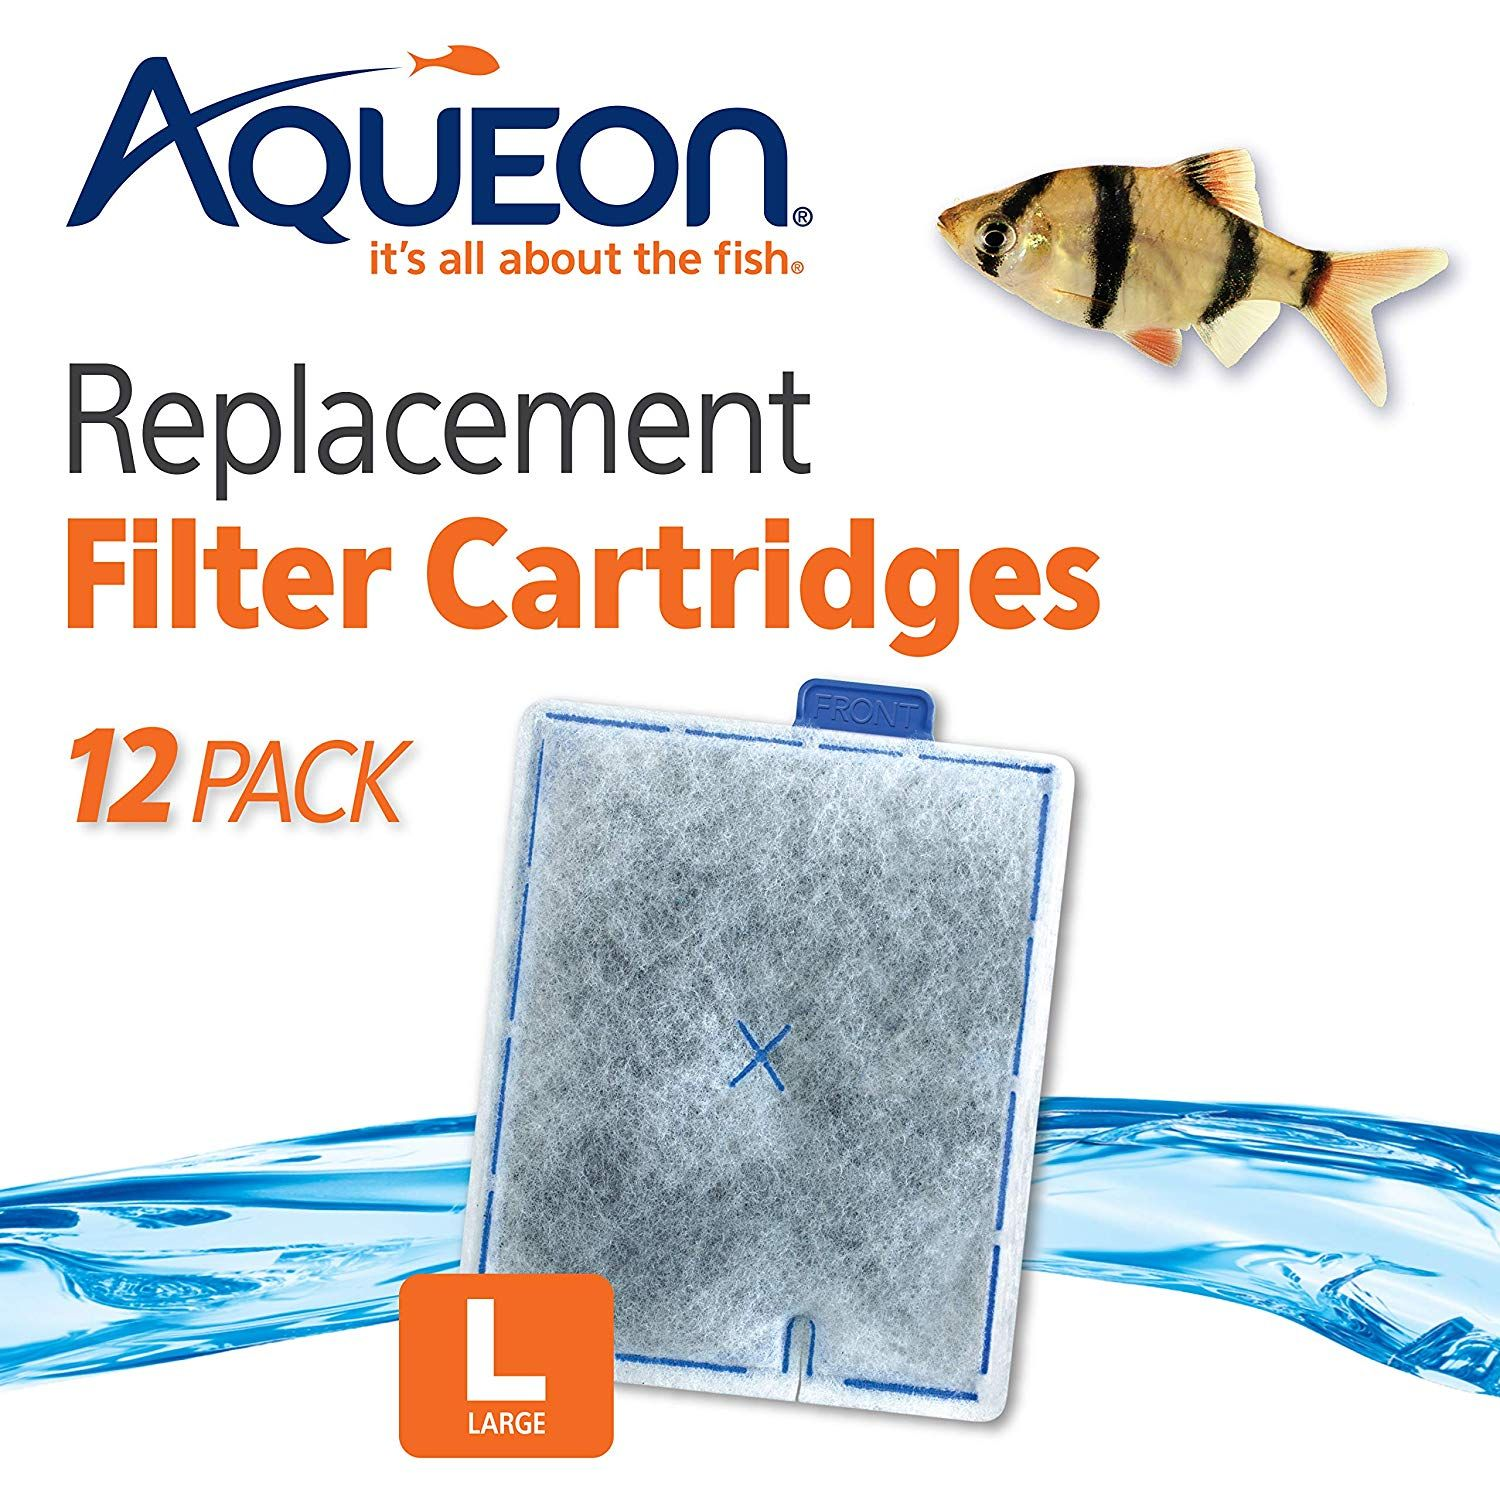 Salt Water Aquarium Filter Ready To Use Cartridge Contains High Quality Activated Carbon That Keeps Water Clean Rin In 2020 Filters Replacement Filter Aquarium Filter